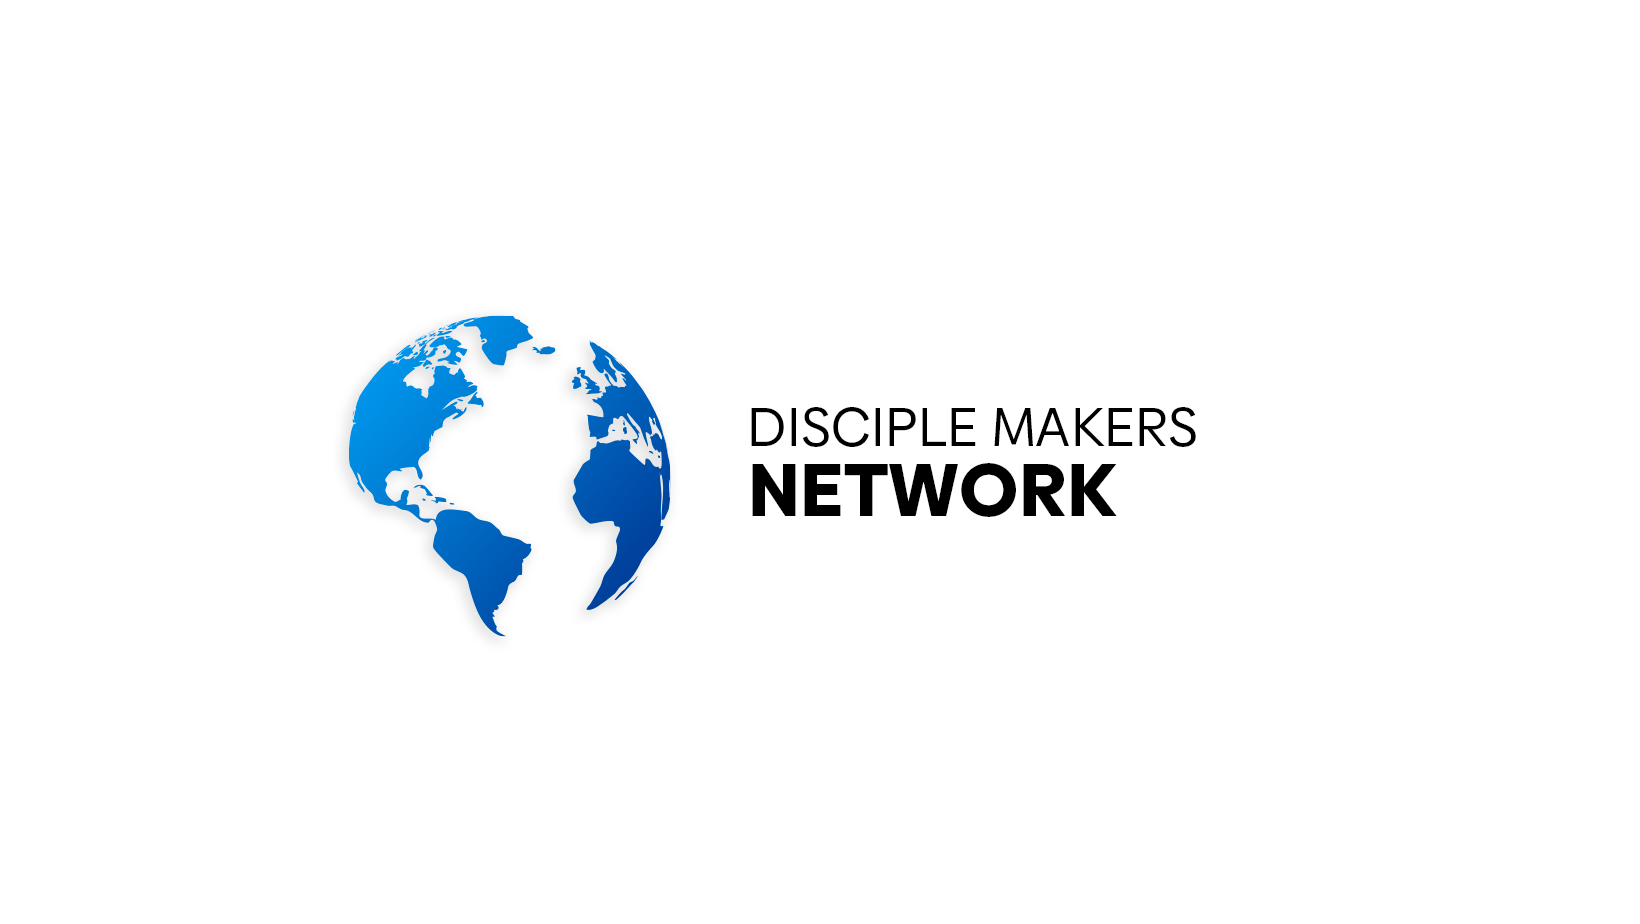 Disciple Makers Network